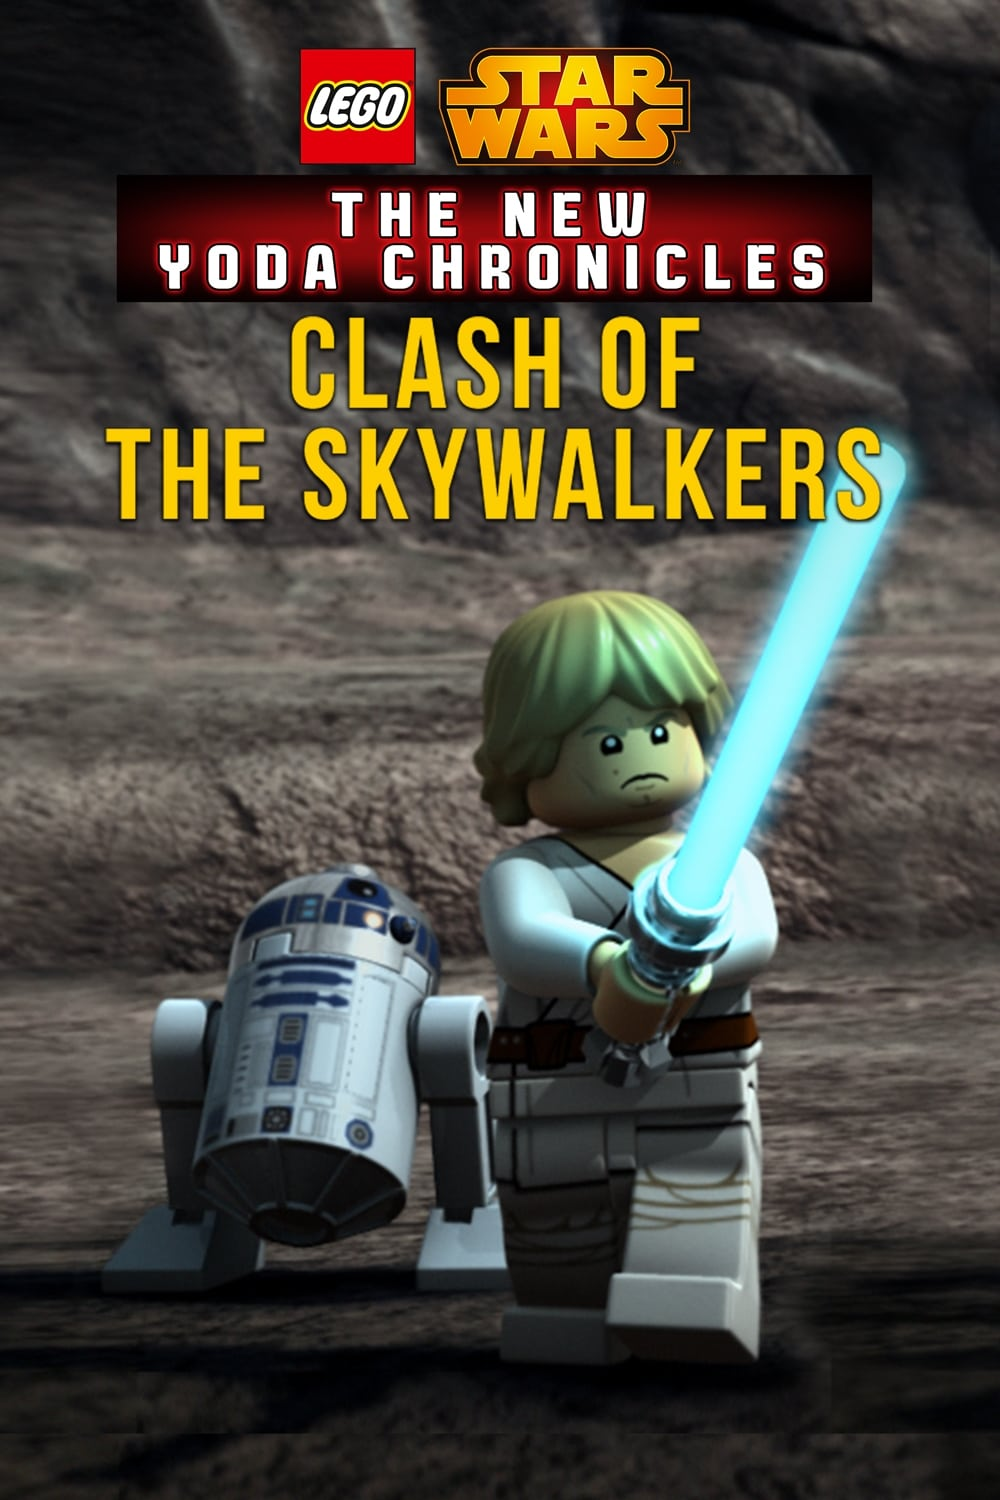 LEGO Star Wars: The New Yoda Chronicles - Clash of the Skywalkers (2014)